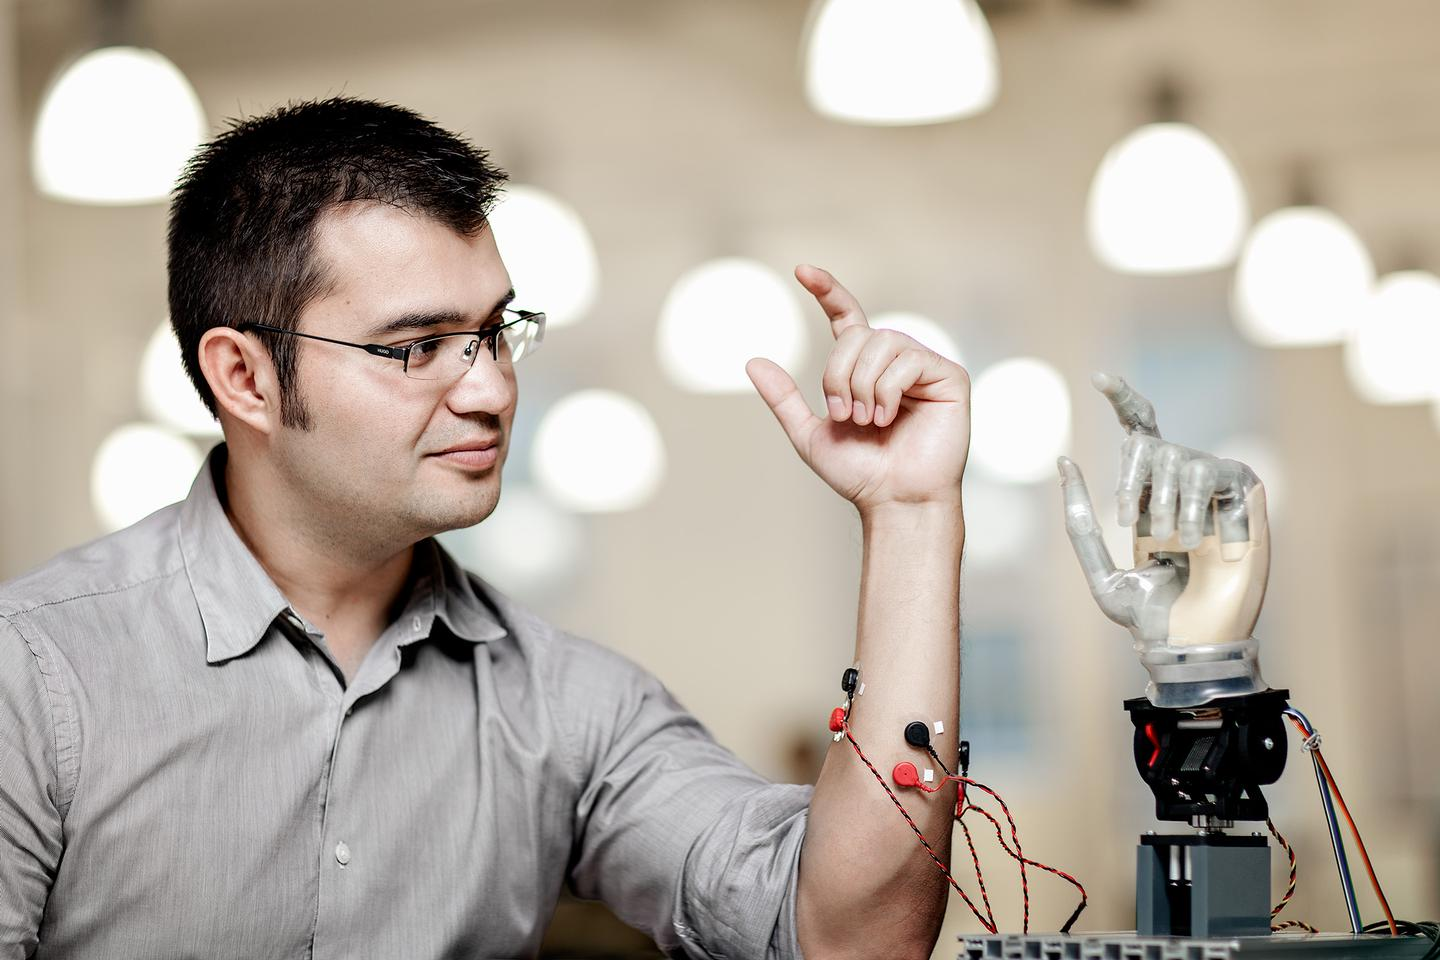 Max Ortiz Catalan demonstrates how the system works with the aid of electrodes placed on the skin, although amputees will have the electrodes implanted directly on the nerves and muscles inside the body